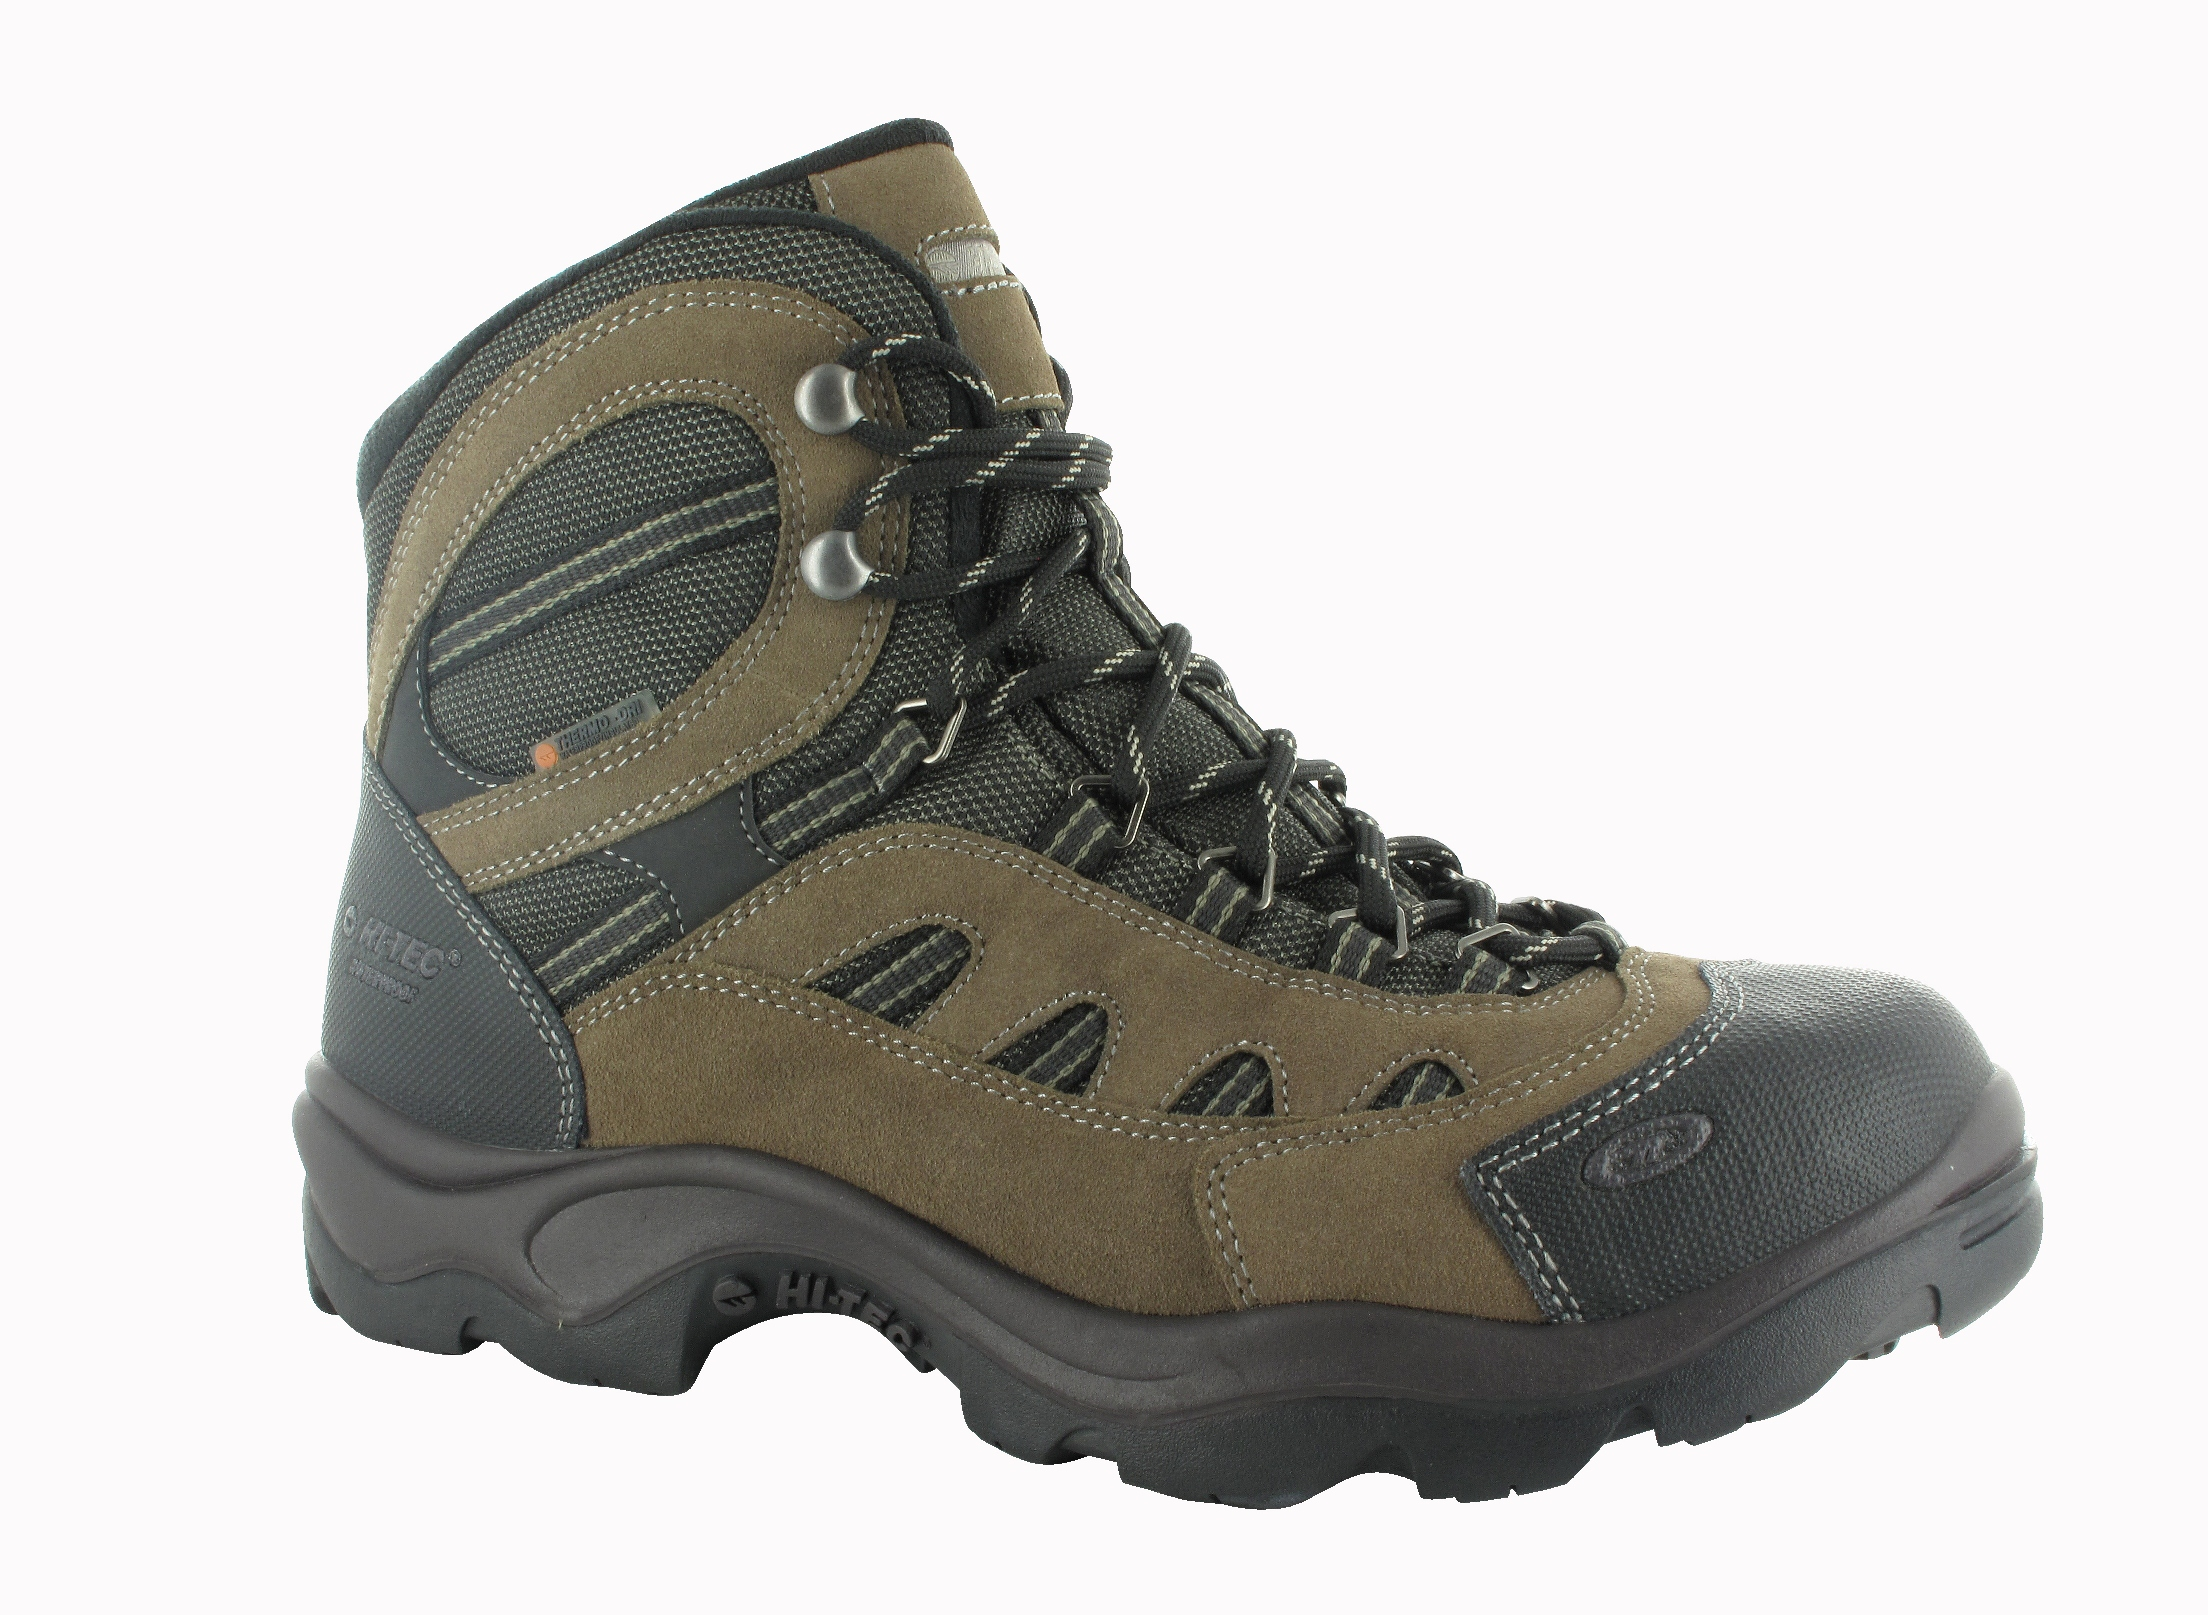 Hi-Tec Men's Bandera Mid 200 Waterproof DarkTaupe/Bungee/Warm Grey Winter Boot PartNumber: 3ZZVA90910812P MfgPartNumber: 58034